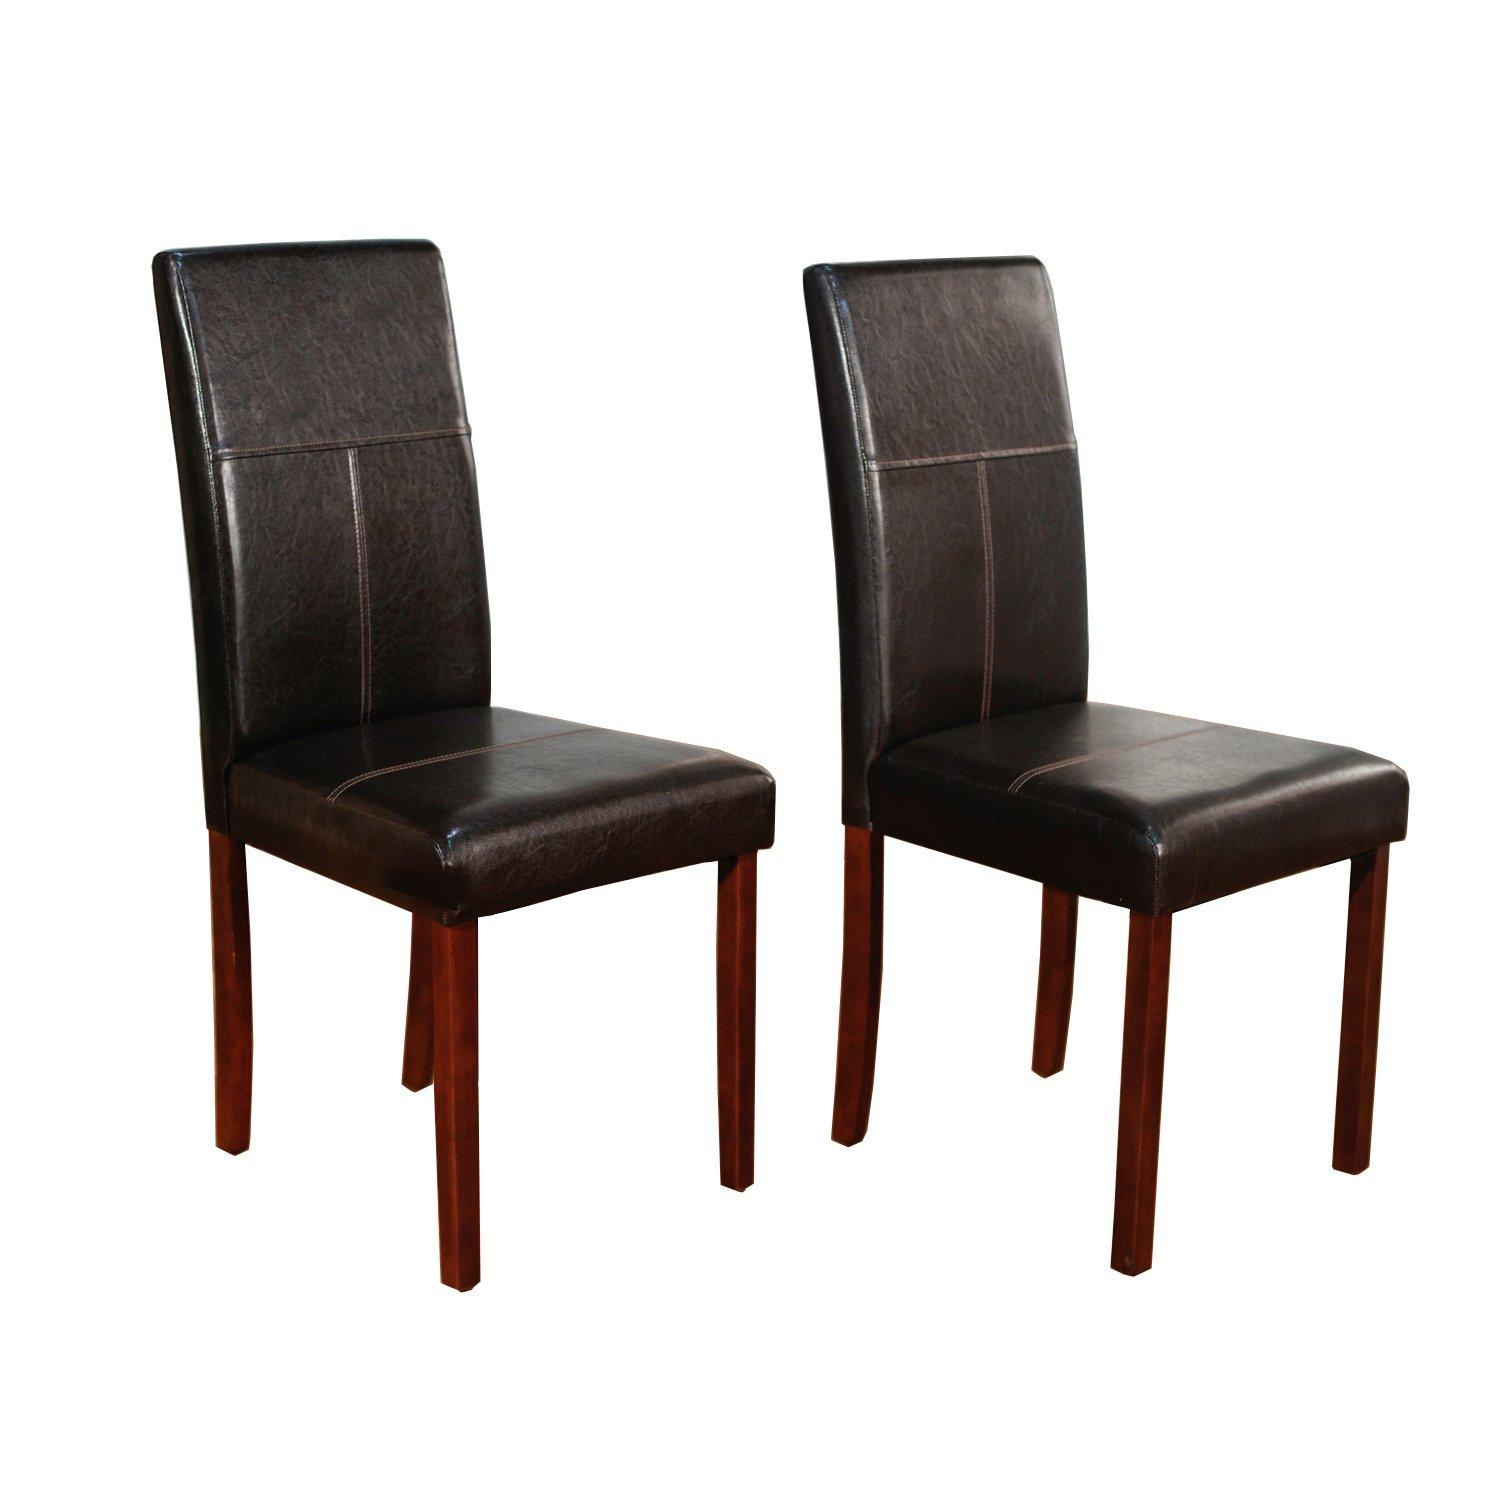 Amazon Dining Chairs: Target Marketing Systems Set Of 2 Upholstered PU Leather